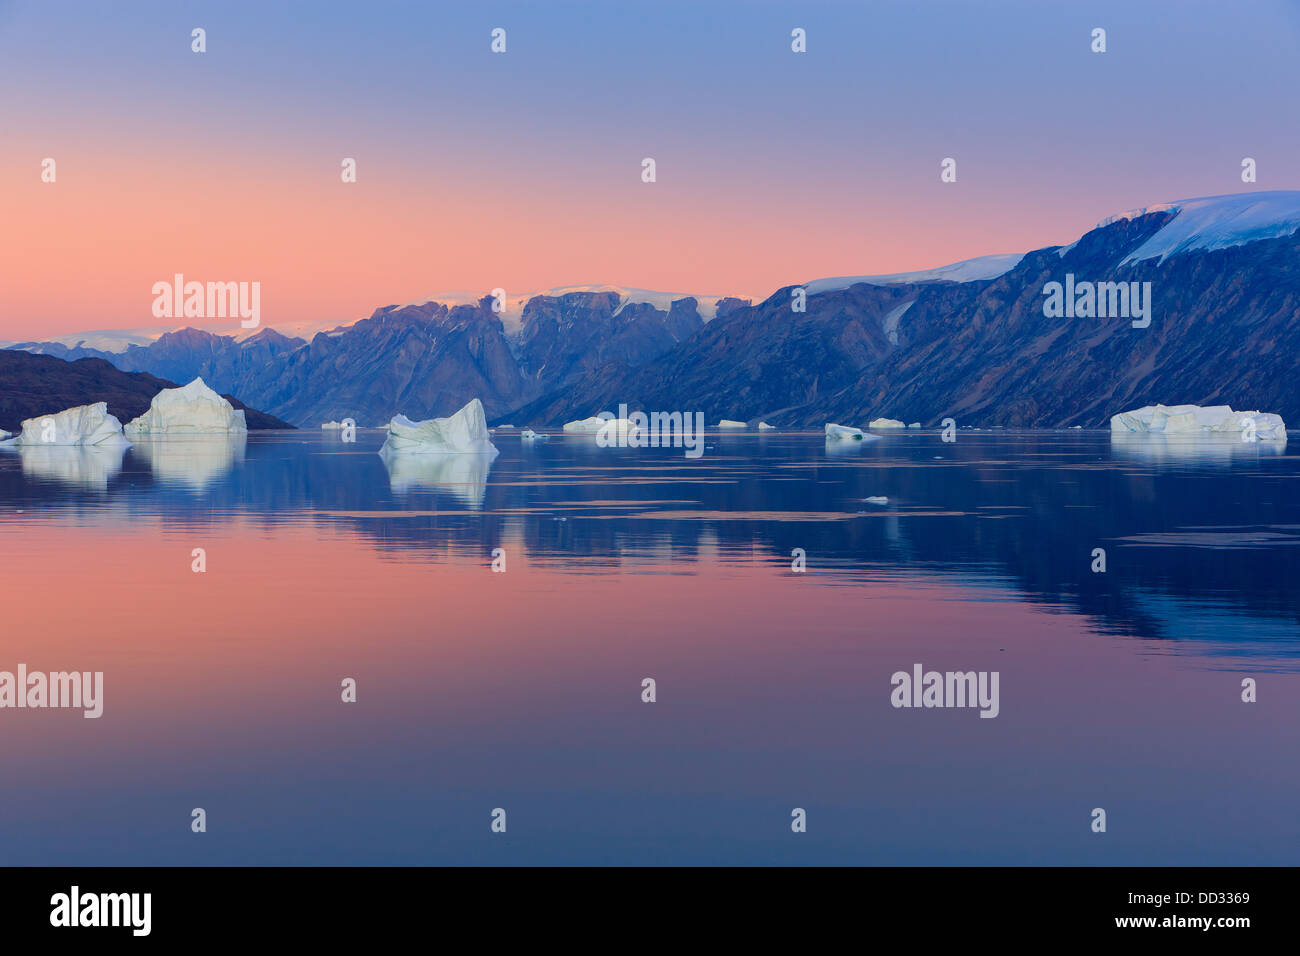 Sunset in the Røde Fjord, Scoresby sund, Greenland - Stock Image